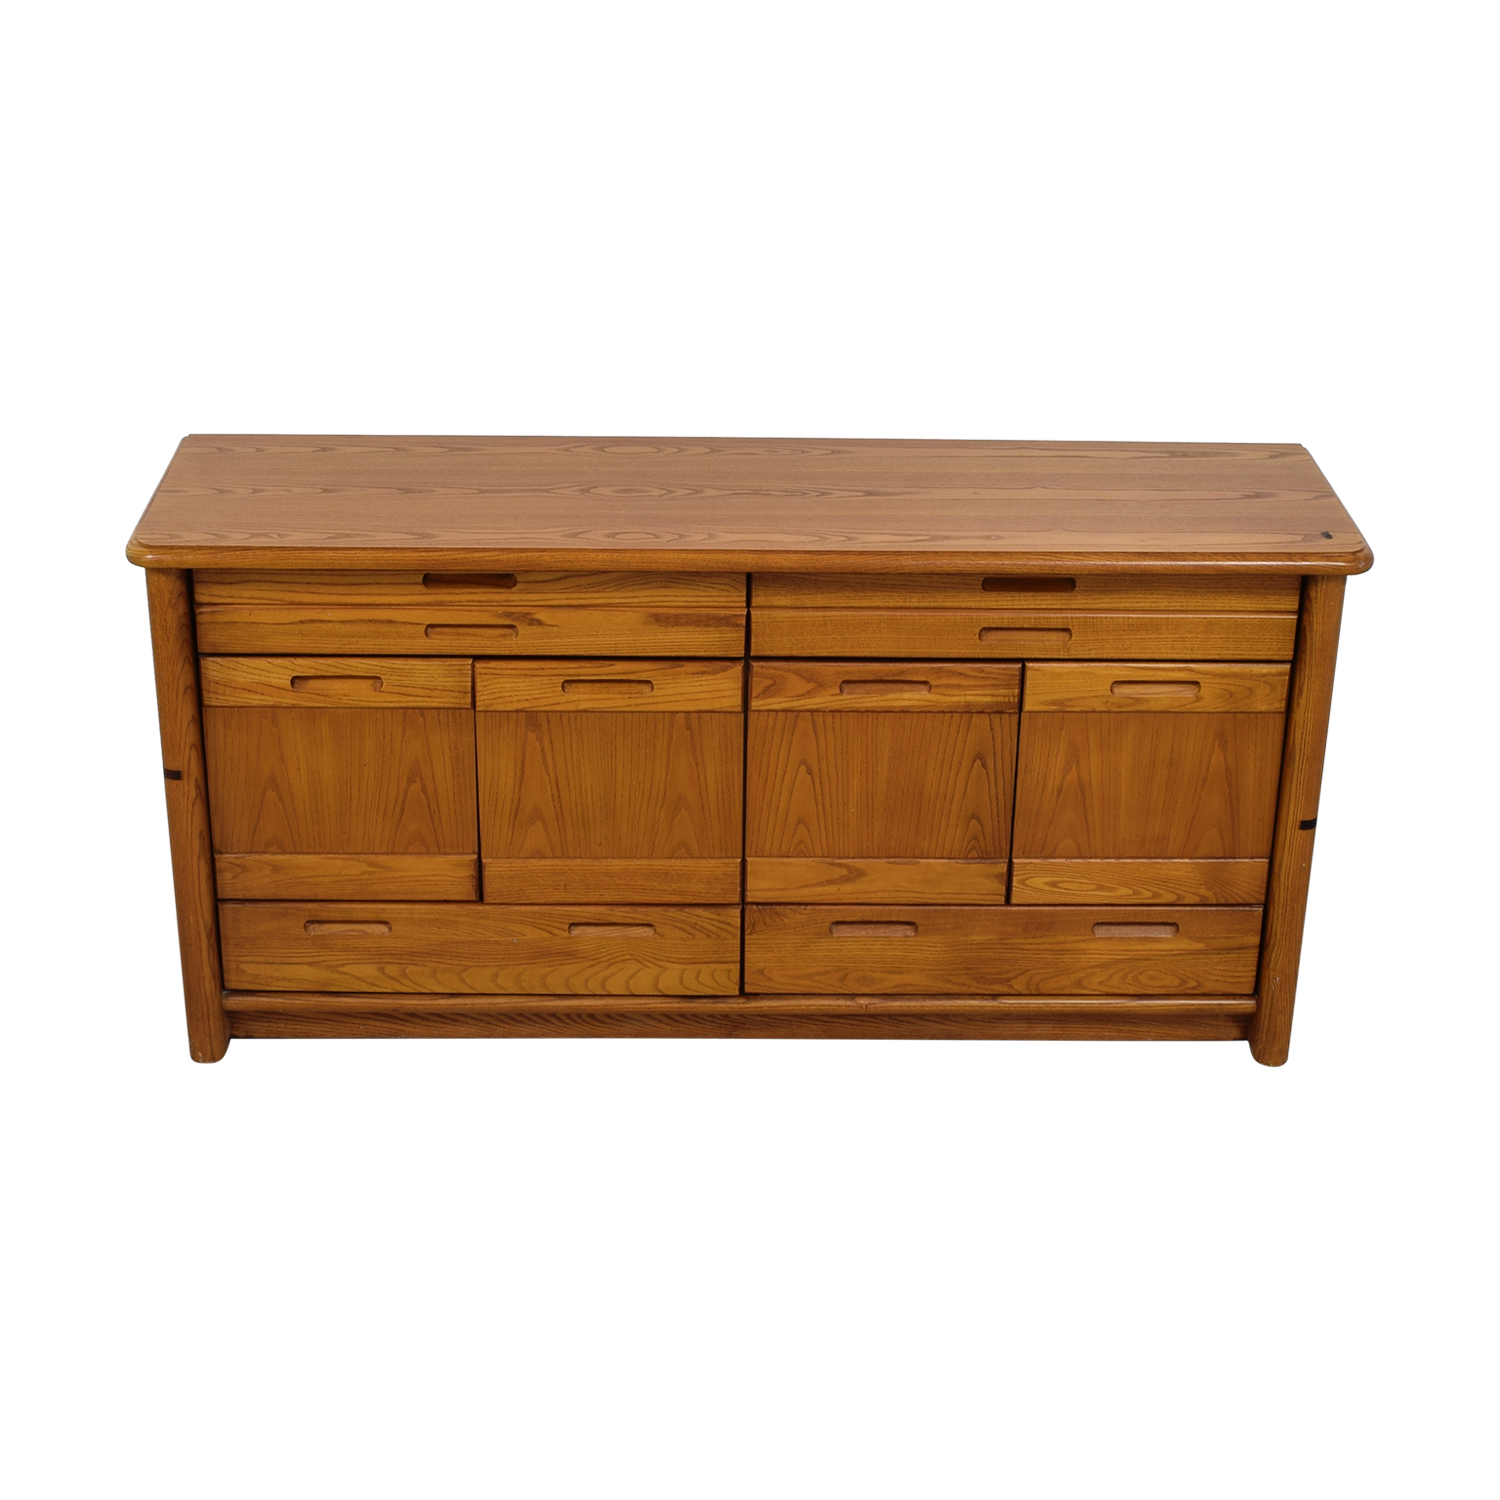 Thomasville Thomasville Wood Buffet Cabinet on sale